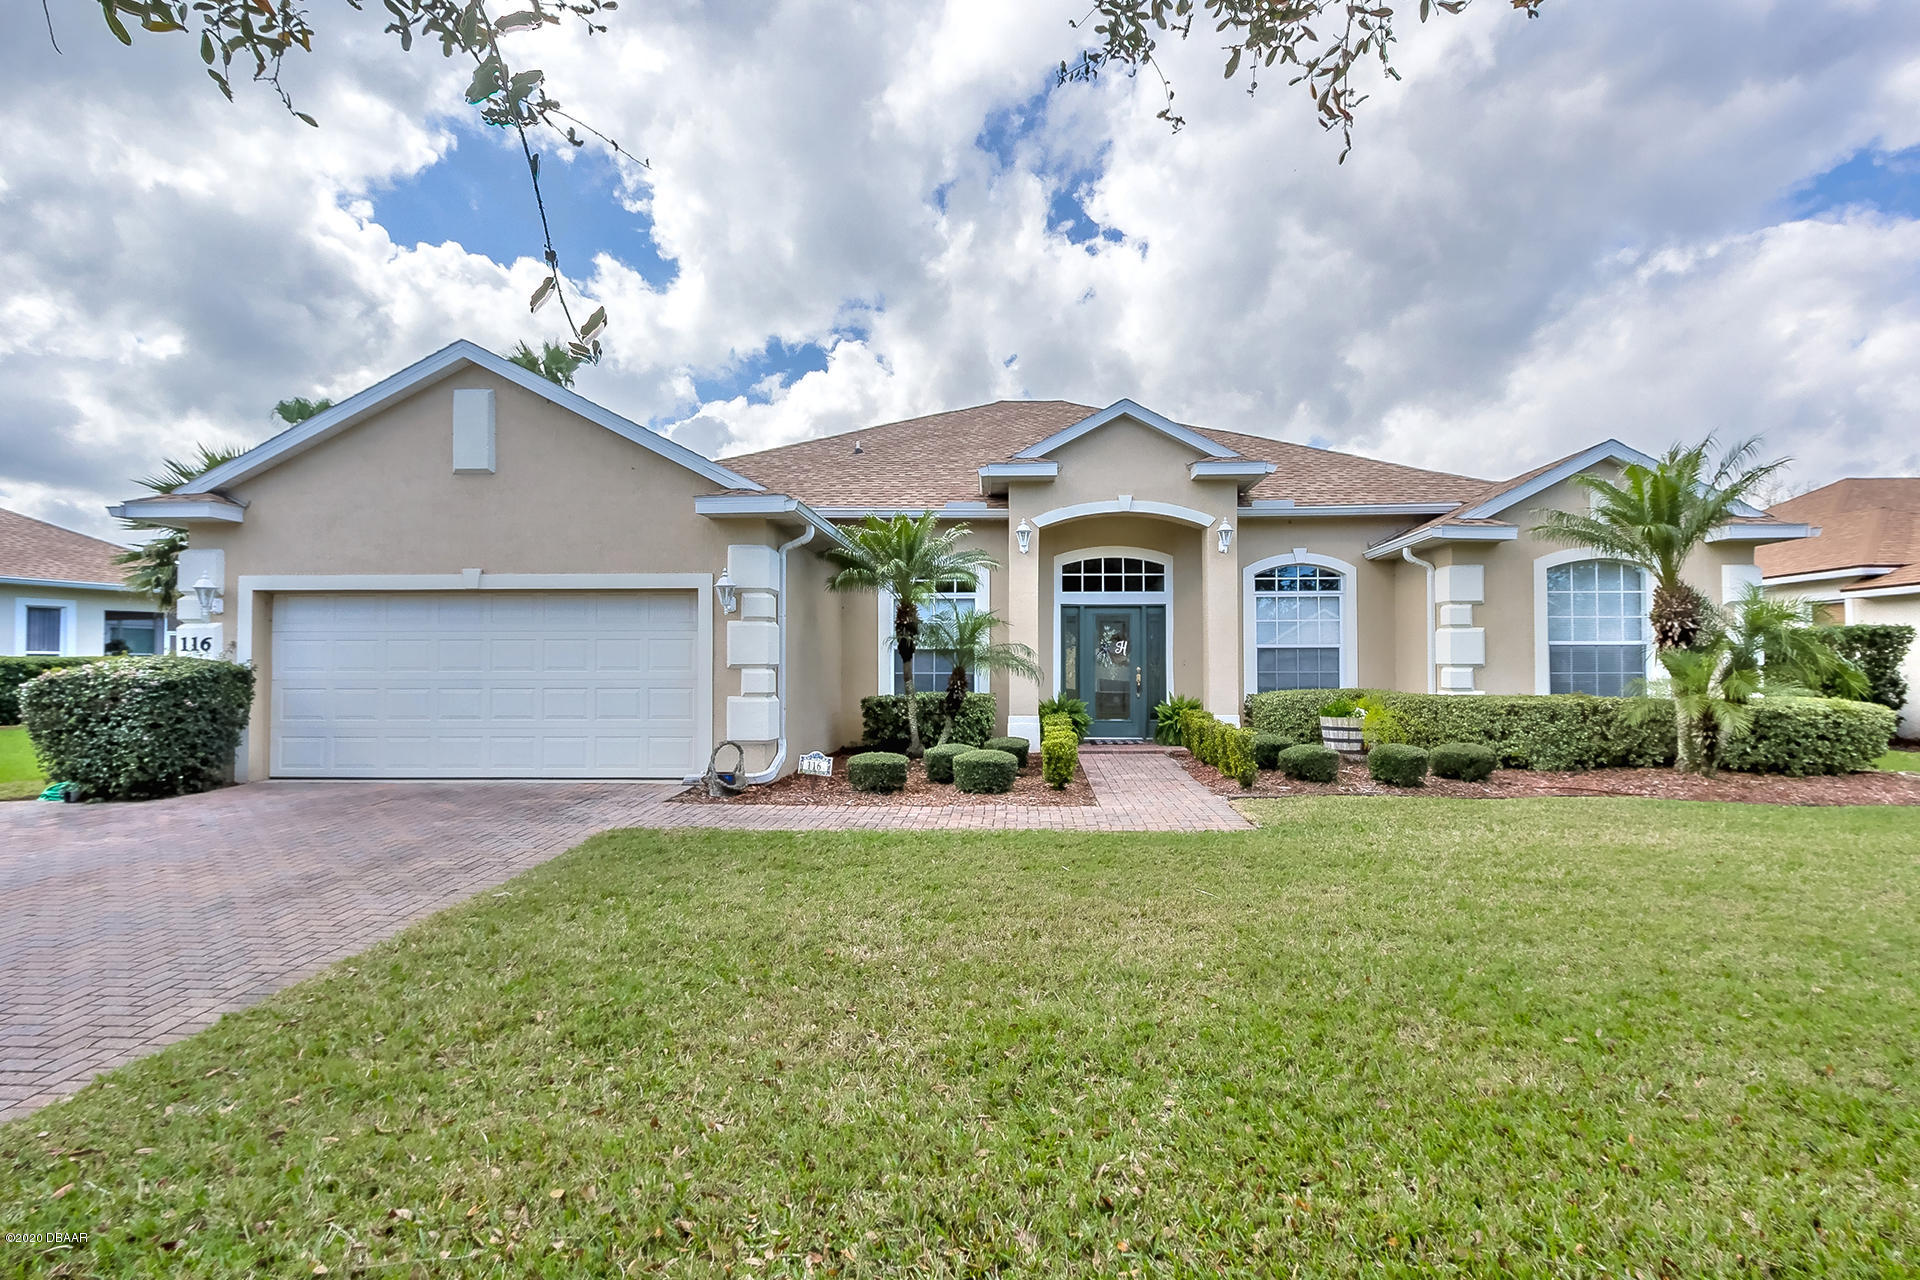 Photo of 116 Zaharias Circle, Daytona Beach, FL 32124